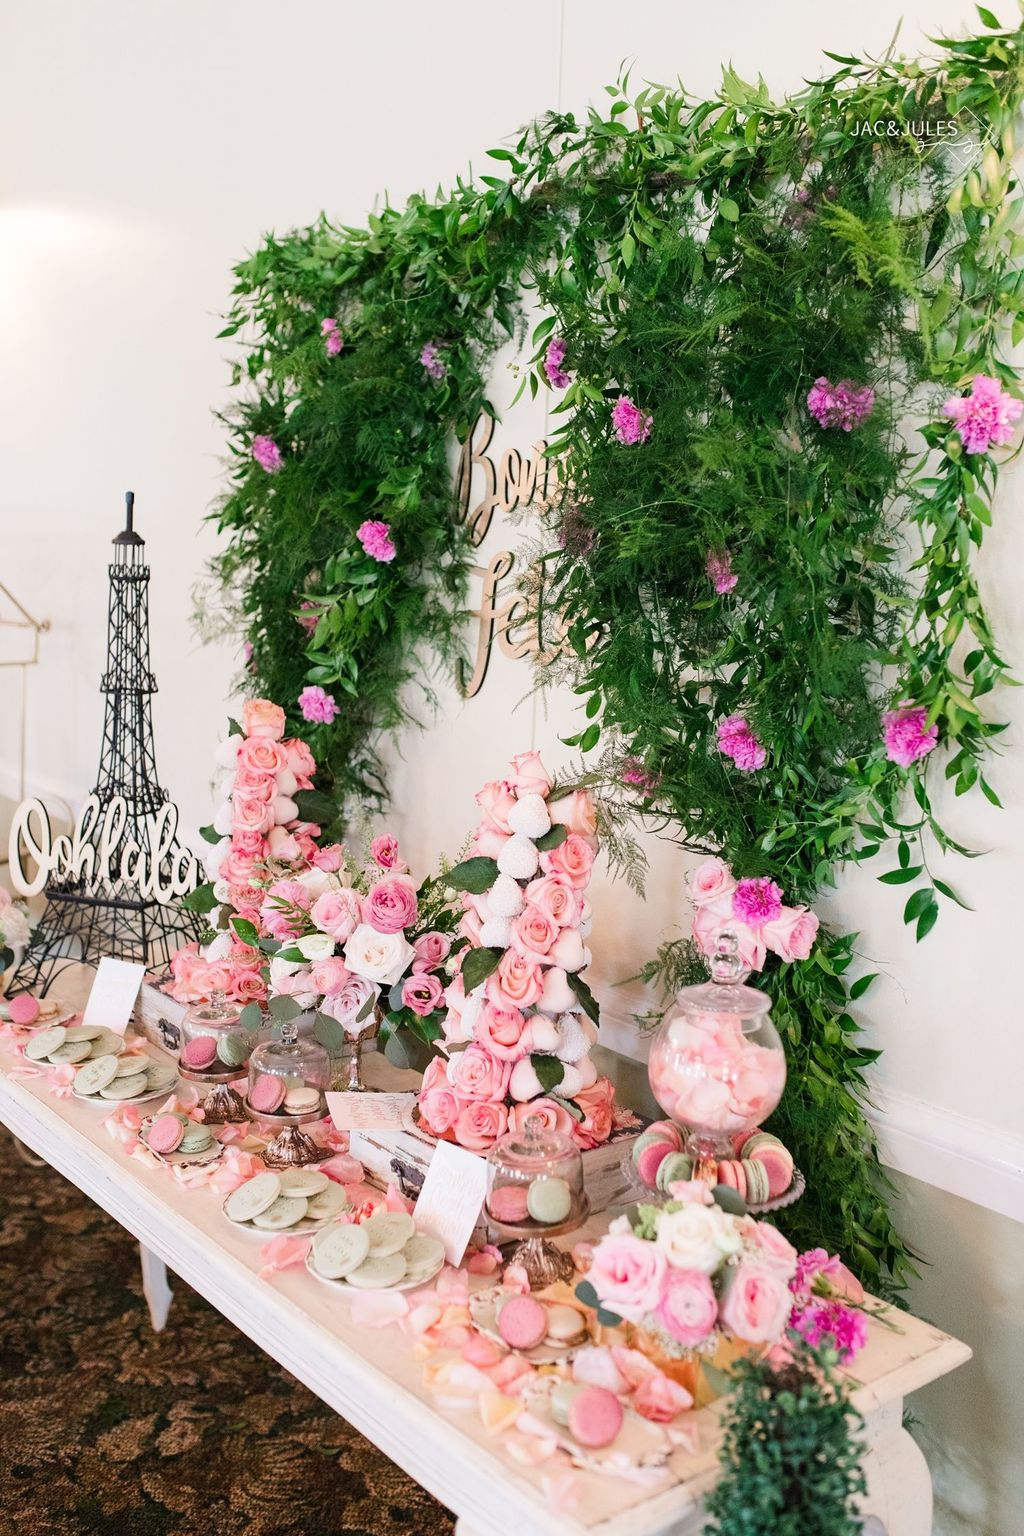 Fabulous Floral Theme Party Decor Ideas Best For Summertime 26